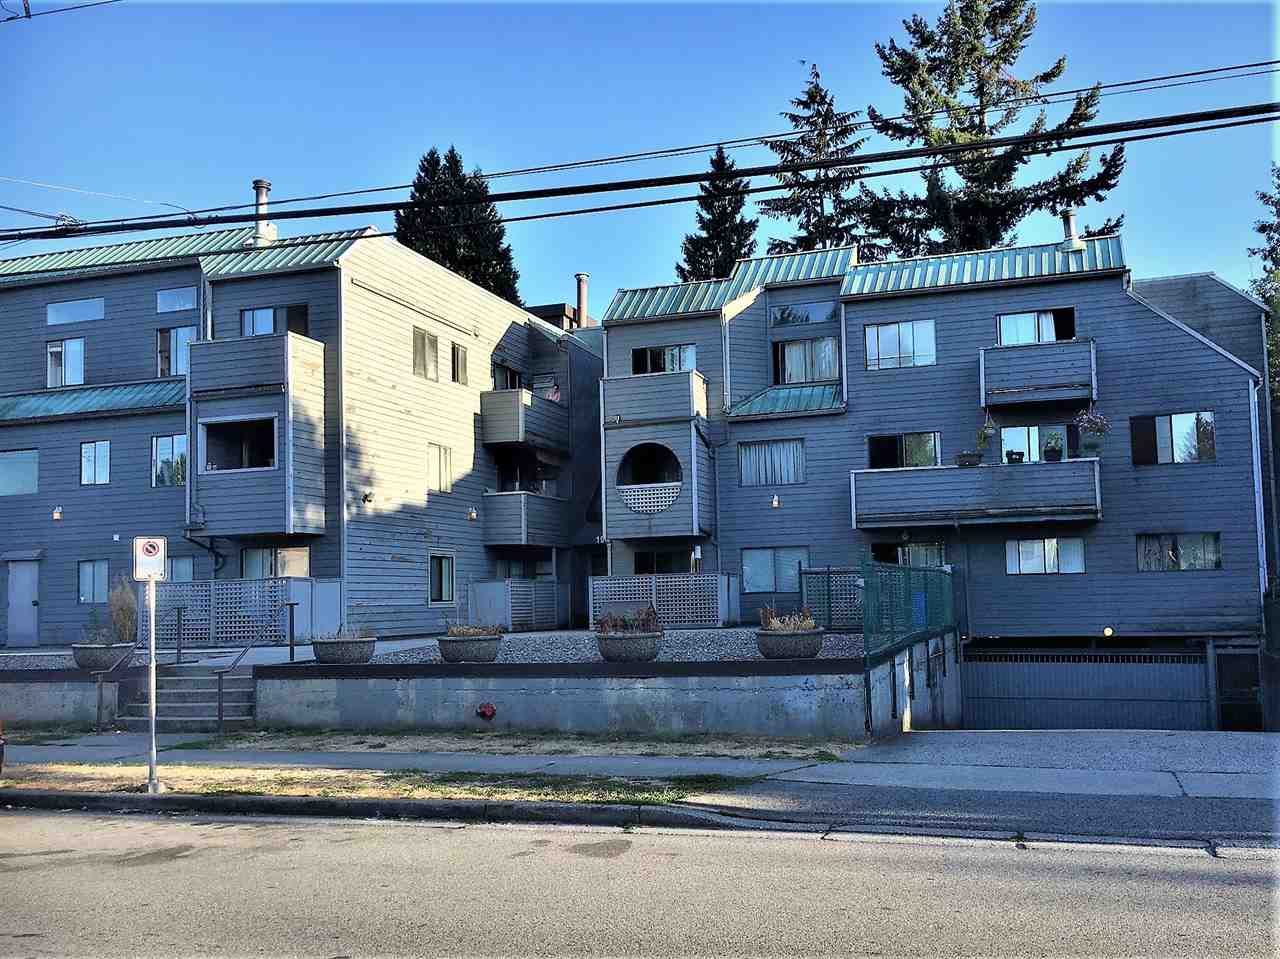 Condo Apartment at 103 1948 COQUITLAM AVENUE, Unit 103, Port Coquitlam, British Columbia. Image 1